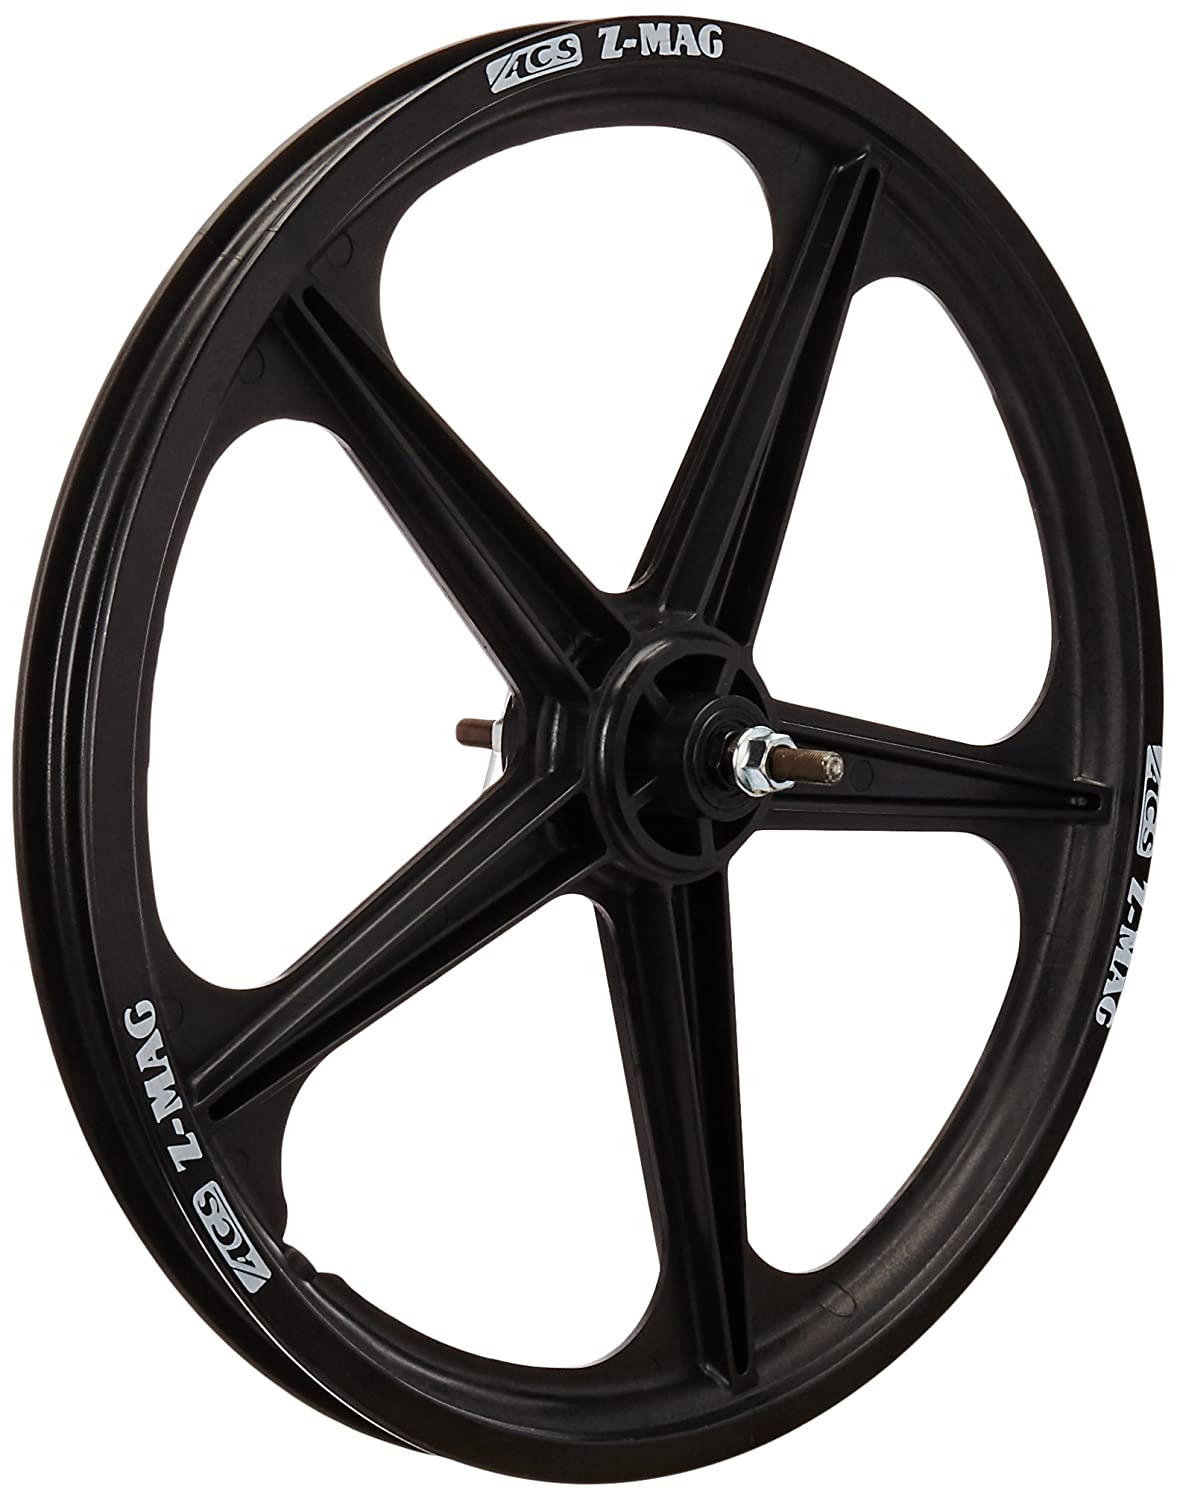 Amazon.com : ACS Mag 5-Spoke Front Wheel, Black : Sports Outdoors ...